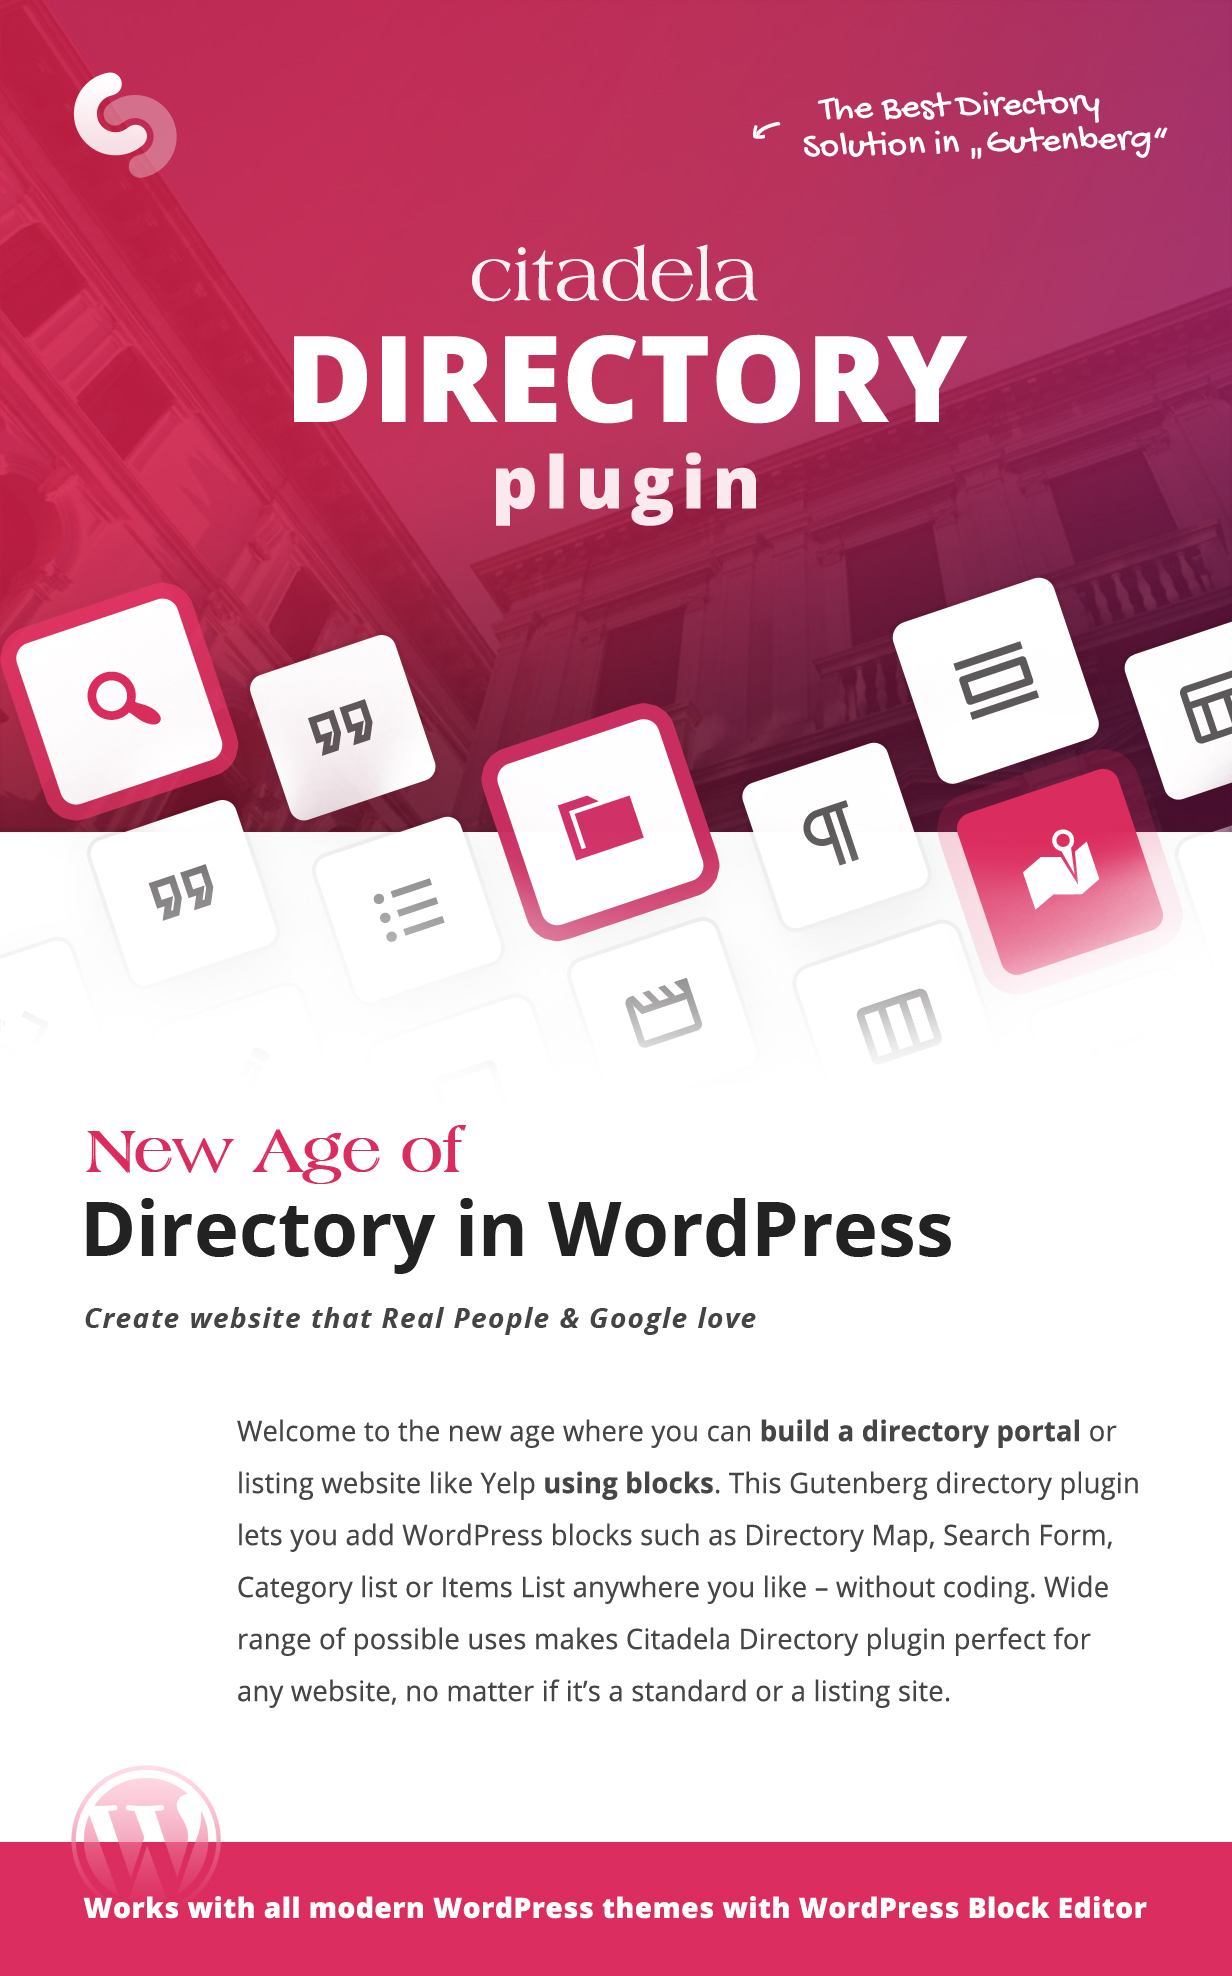 Citadela Directory plugin as the best directory solution in Gutenberg